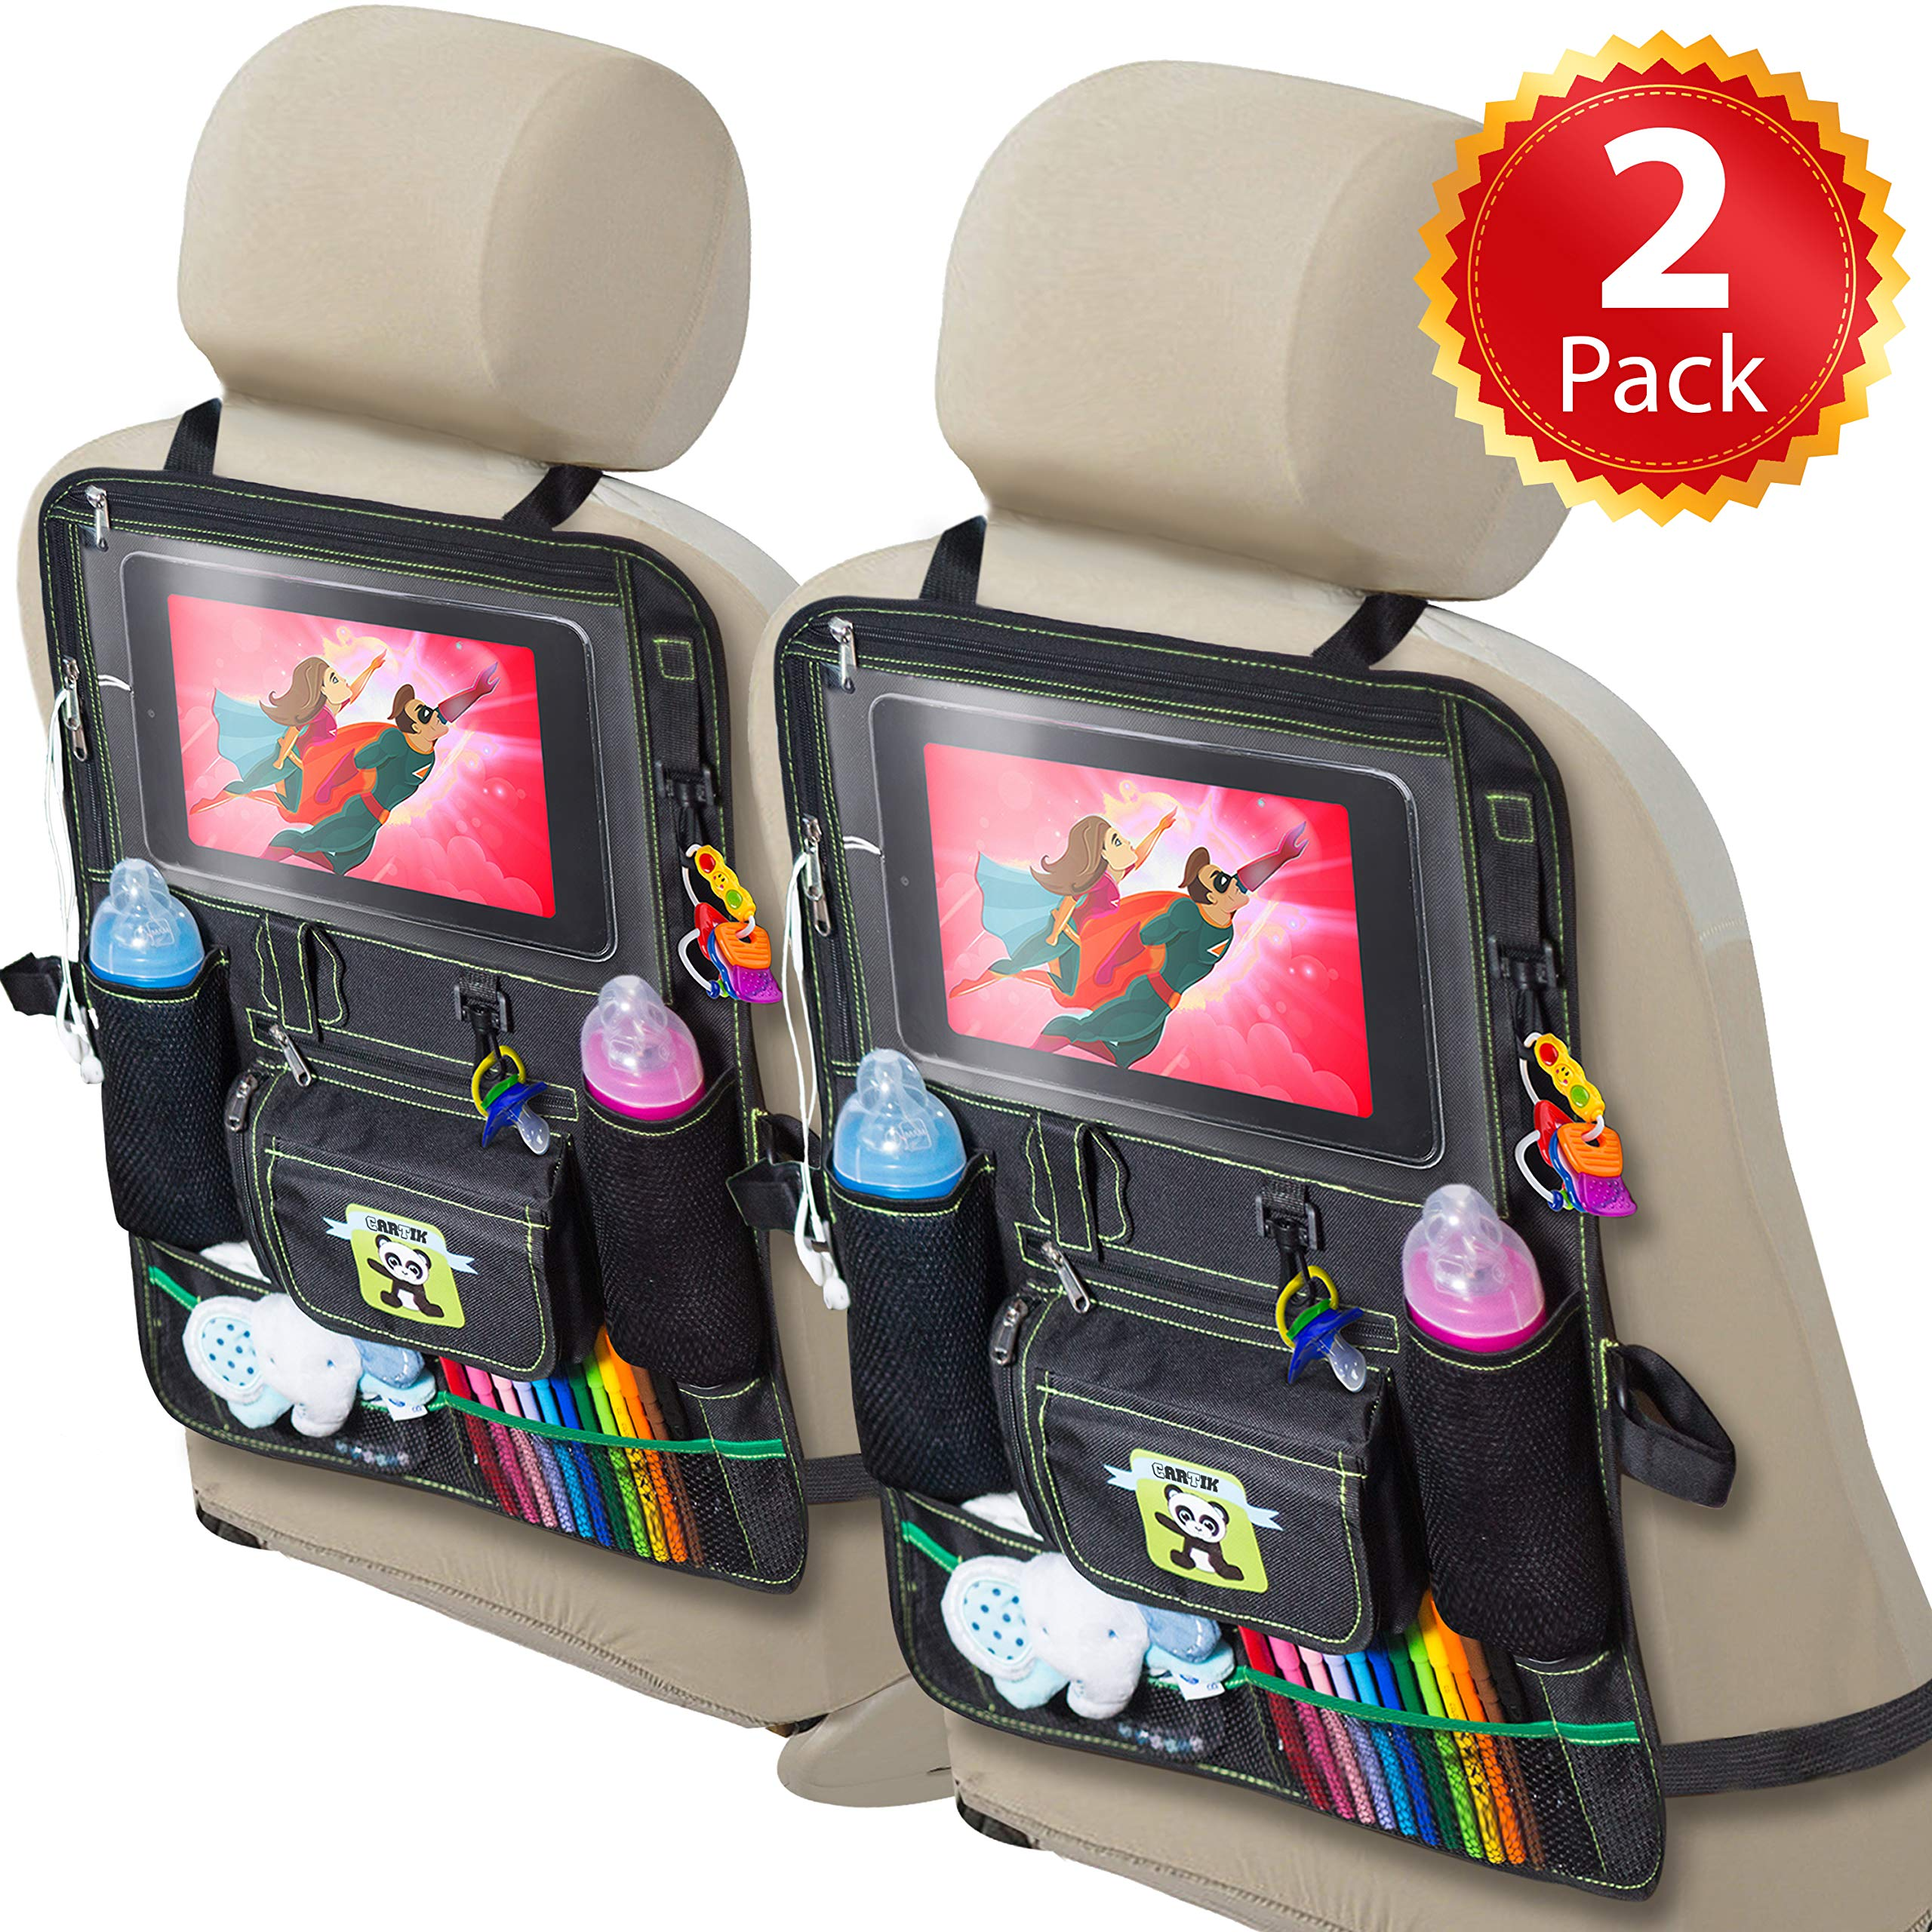 Cartik 2 Pack Backseat Car Organizer for Kids, Babies and Toddlers, with Tablet Holder by iPad Touch Screen, Fit to Baby Stroller, Large Storage, Kick Mat, Back Seat Protector, Organizer eBook by Cartik